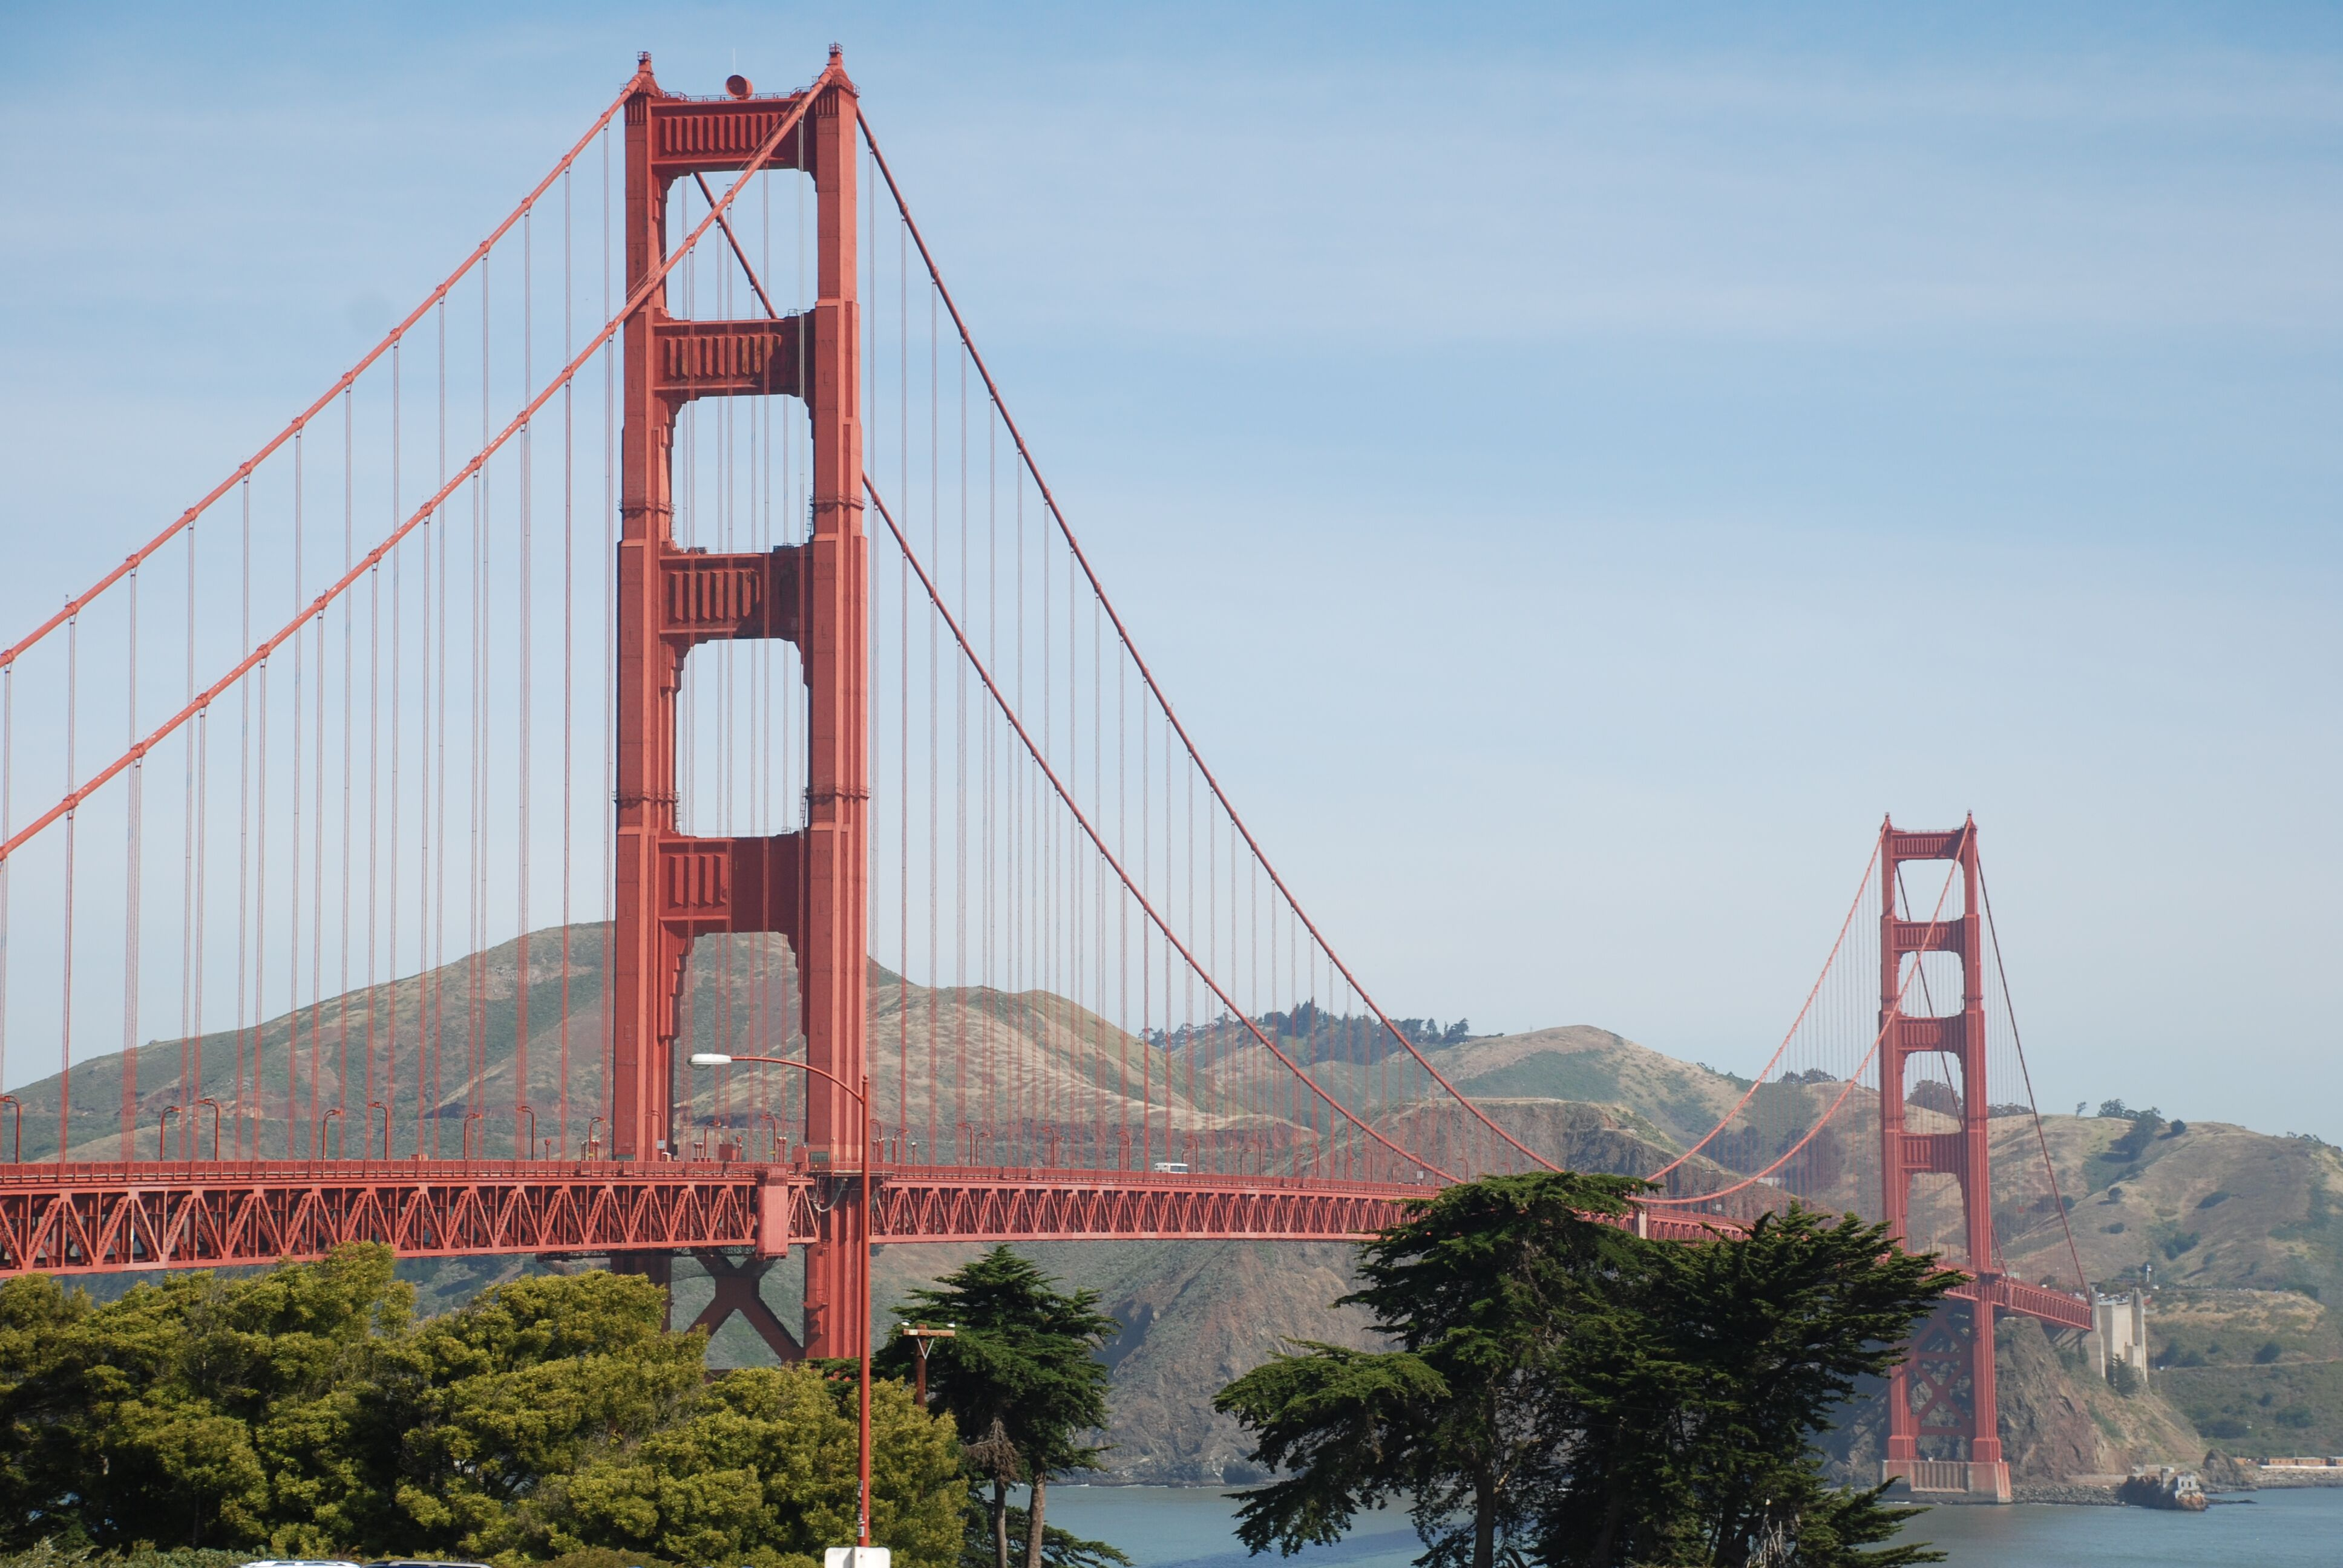 Things to know about San Francisco with a child